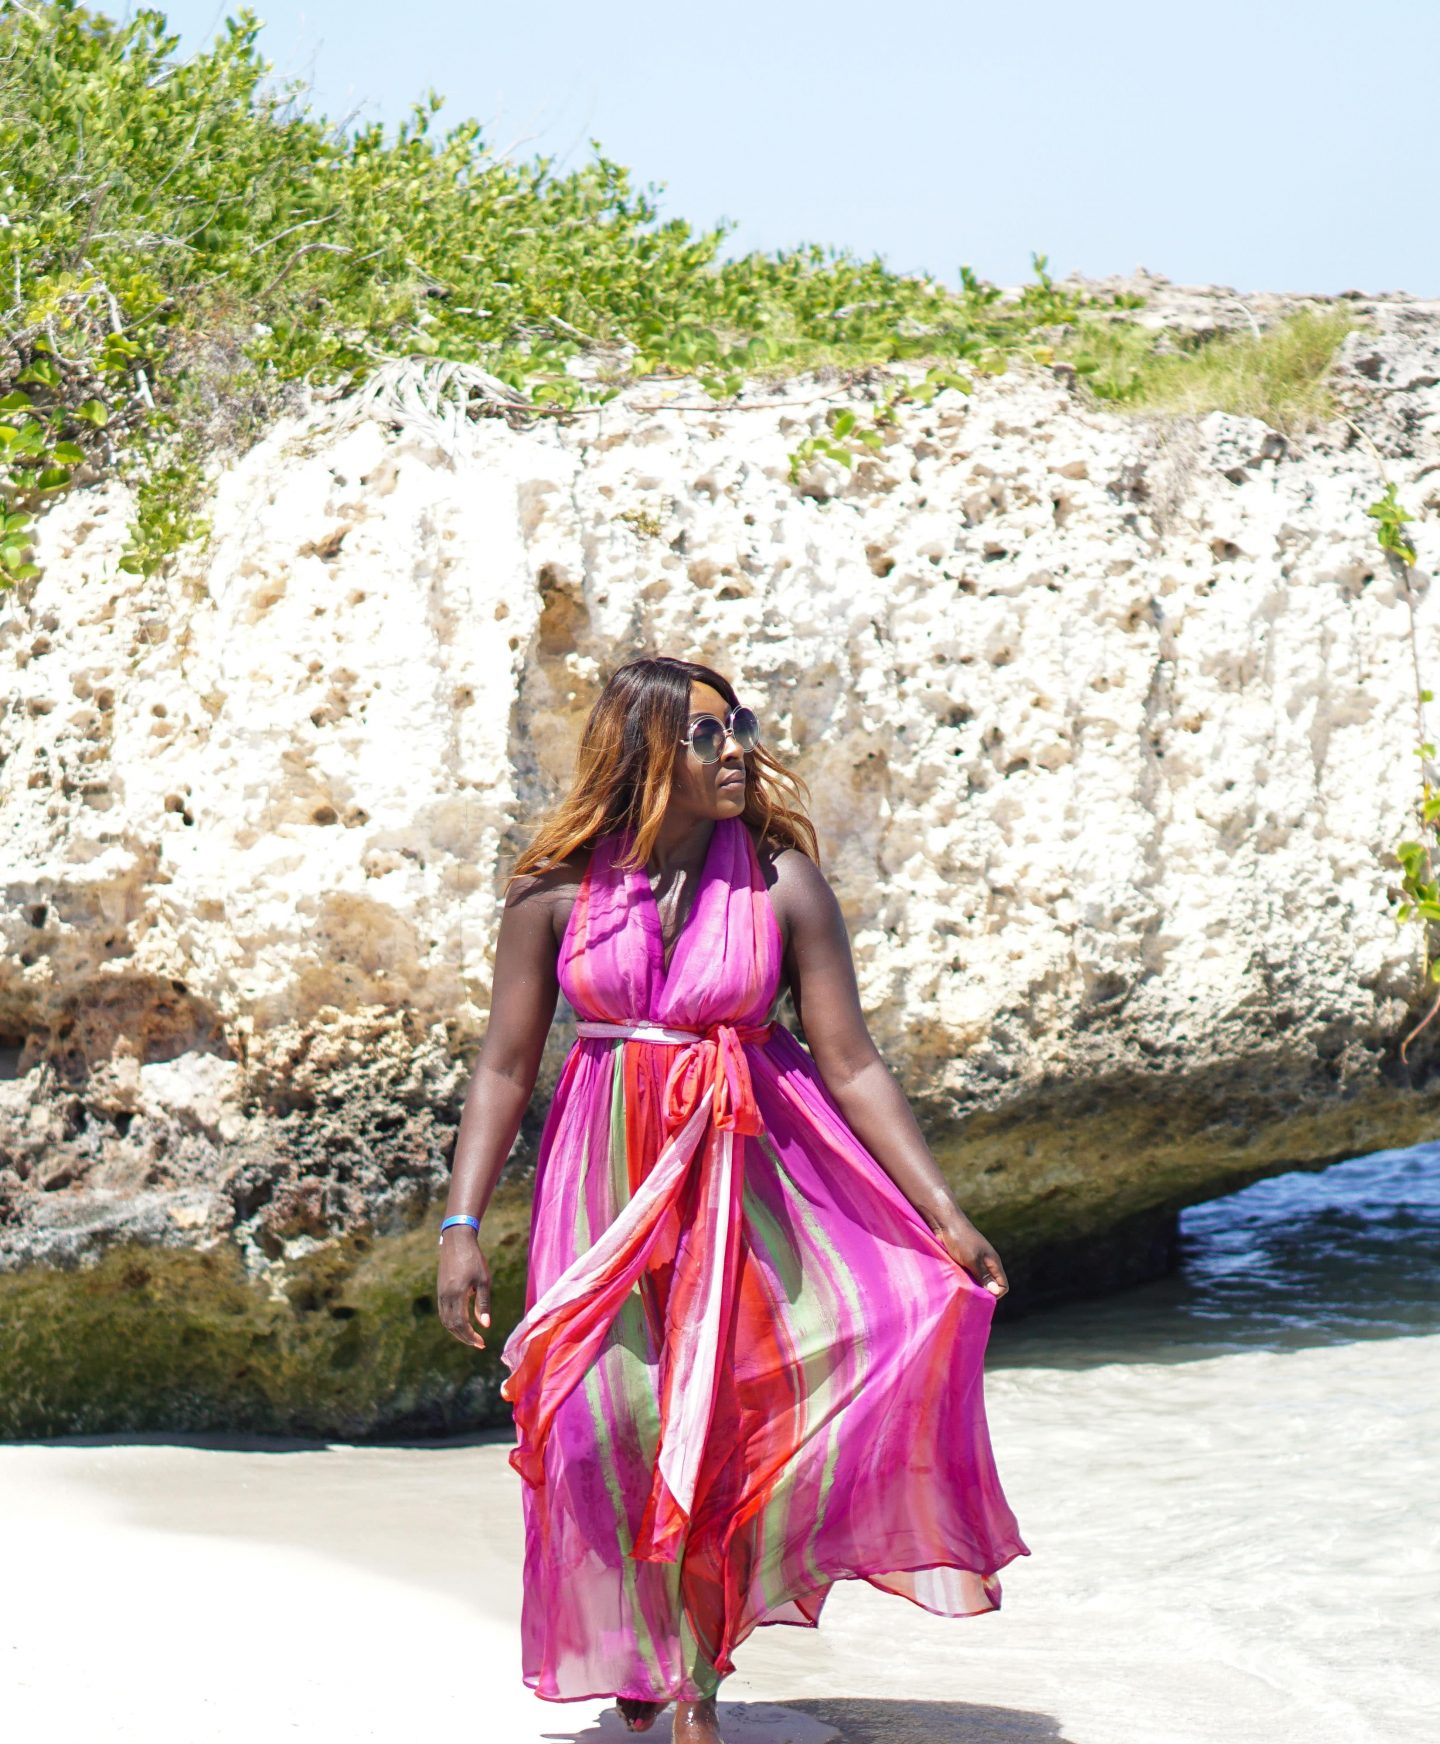 Varadero, Beach Dresses & Chloé Sunglasses 6 - ASOS Beach Dress back - Style and the Sass